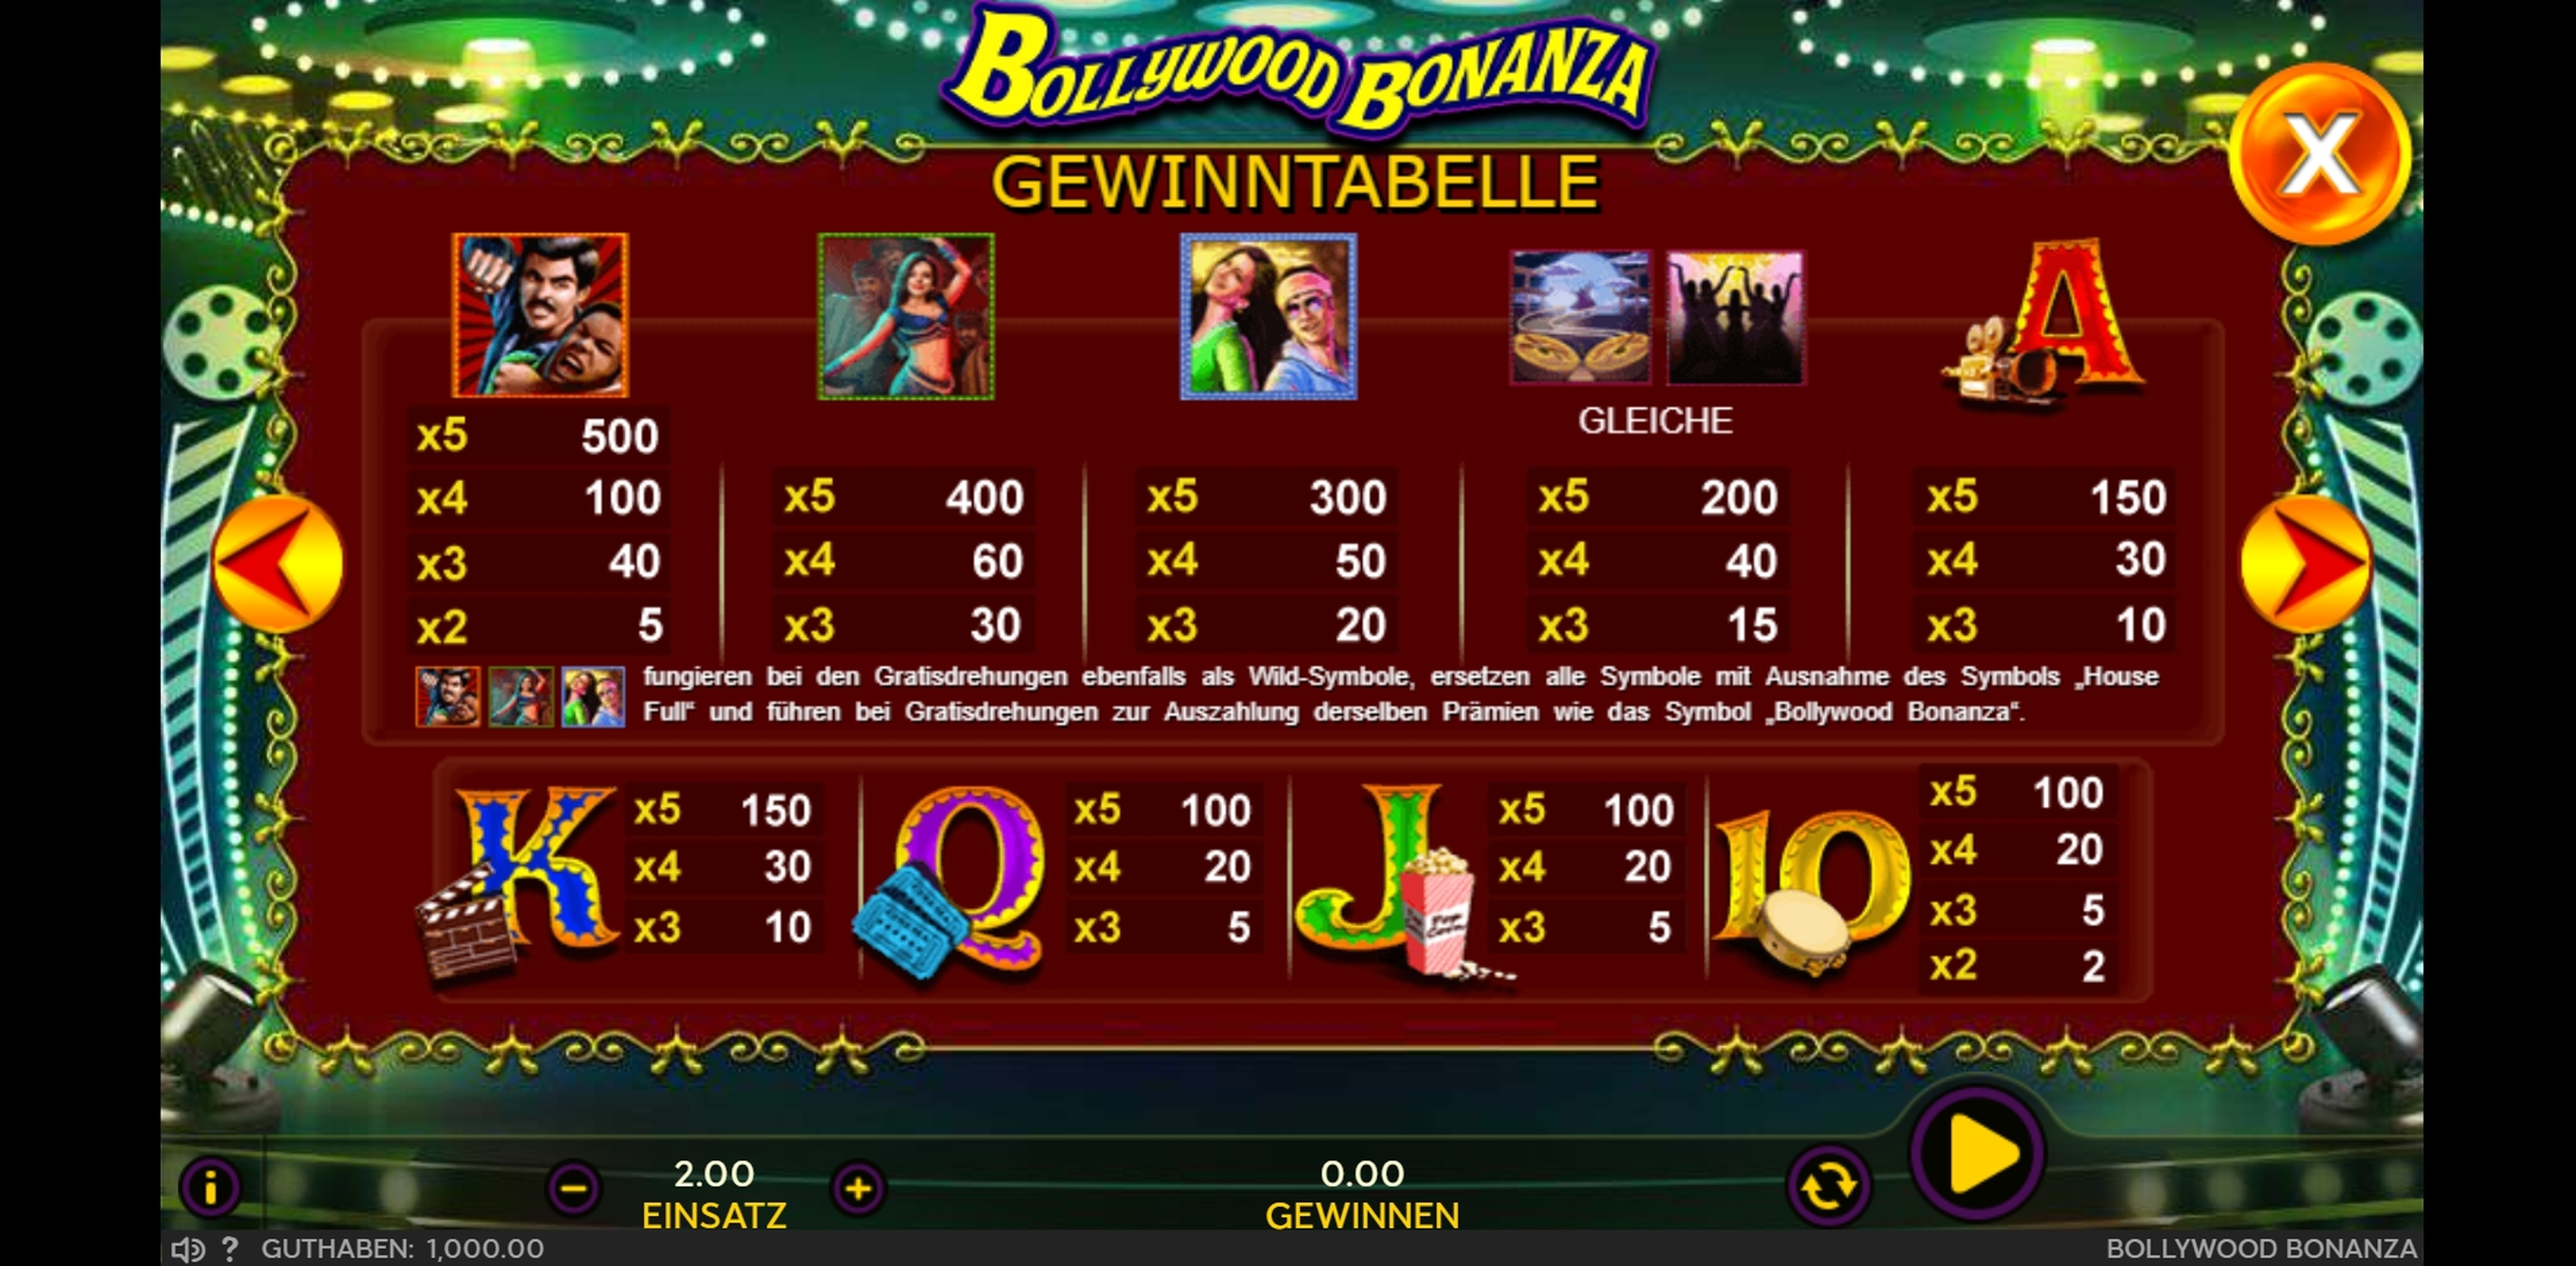 Info of Bollywood Bonanza Slot Game by 888 Gaming